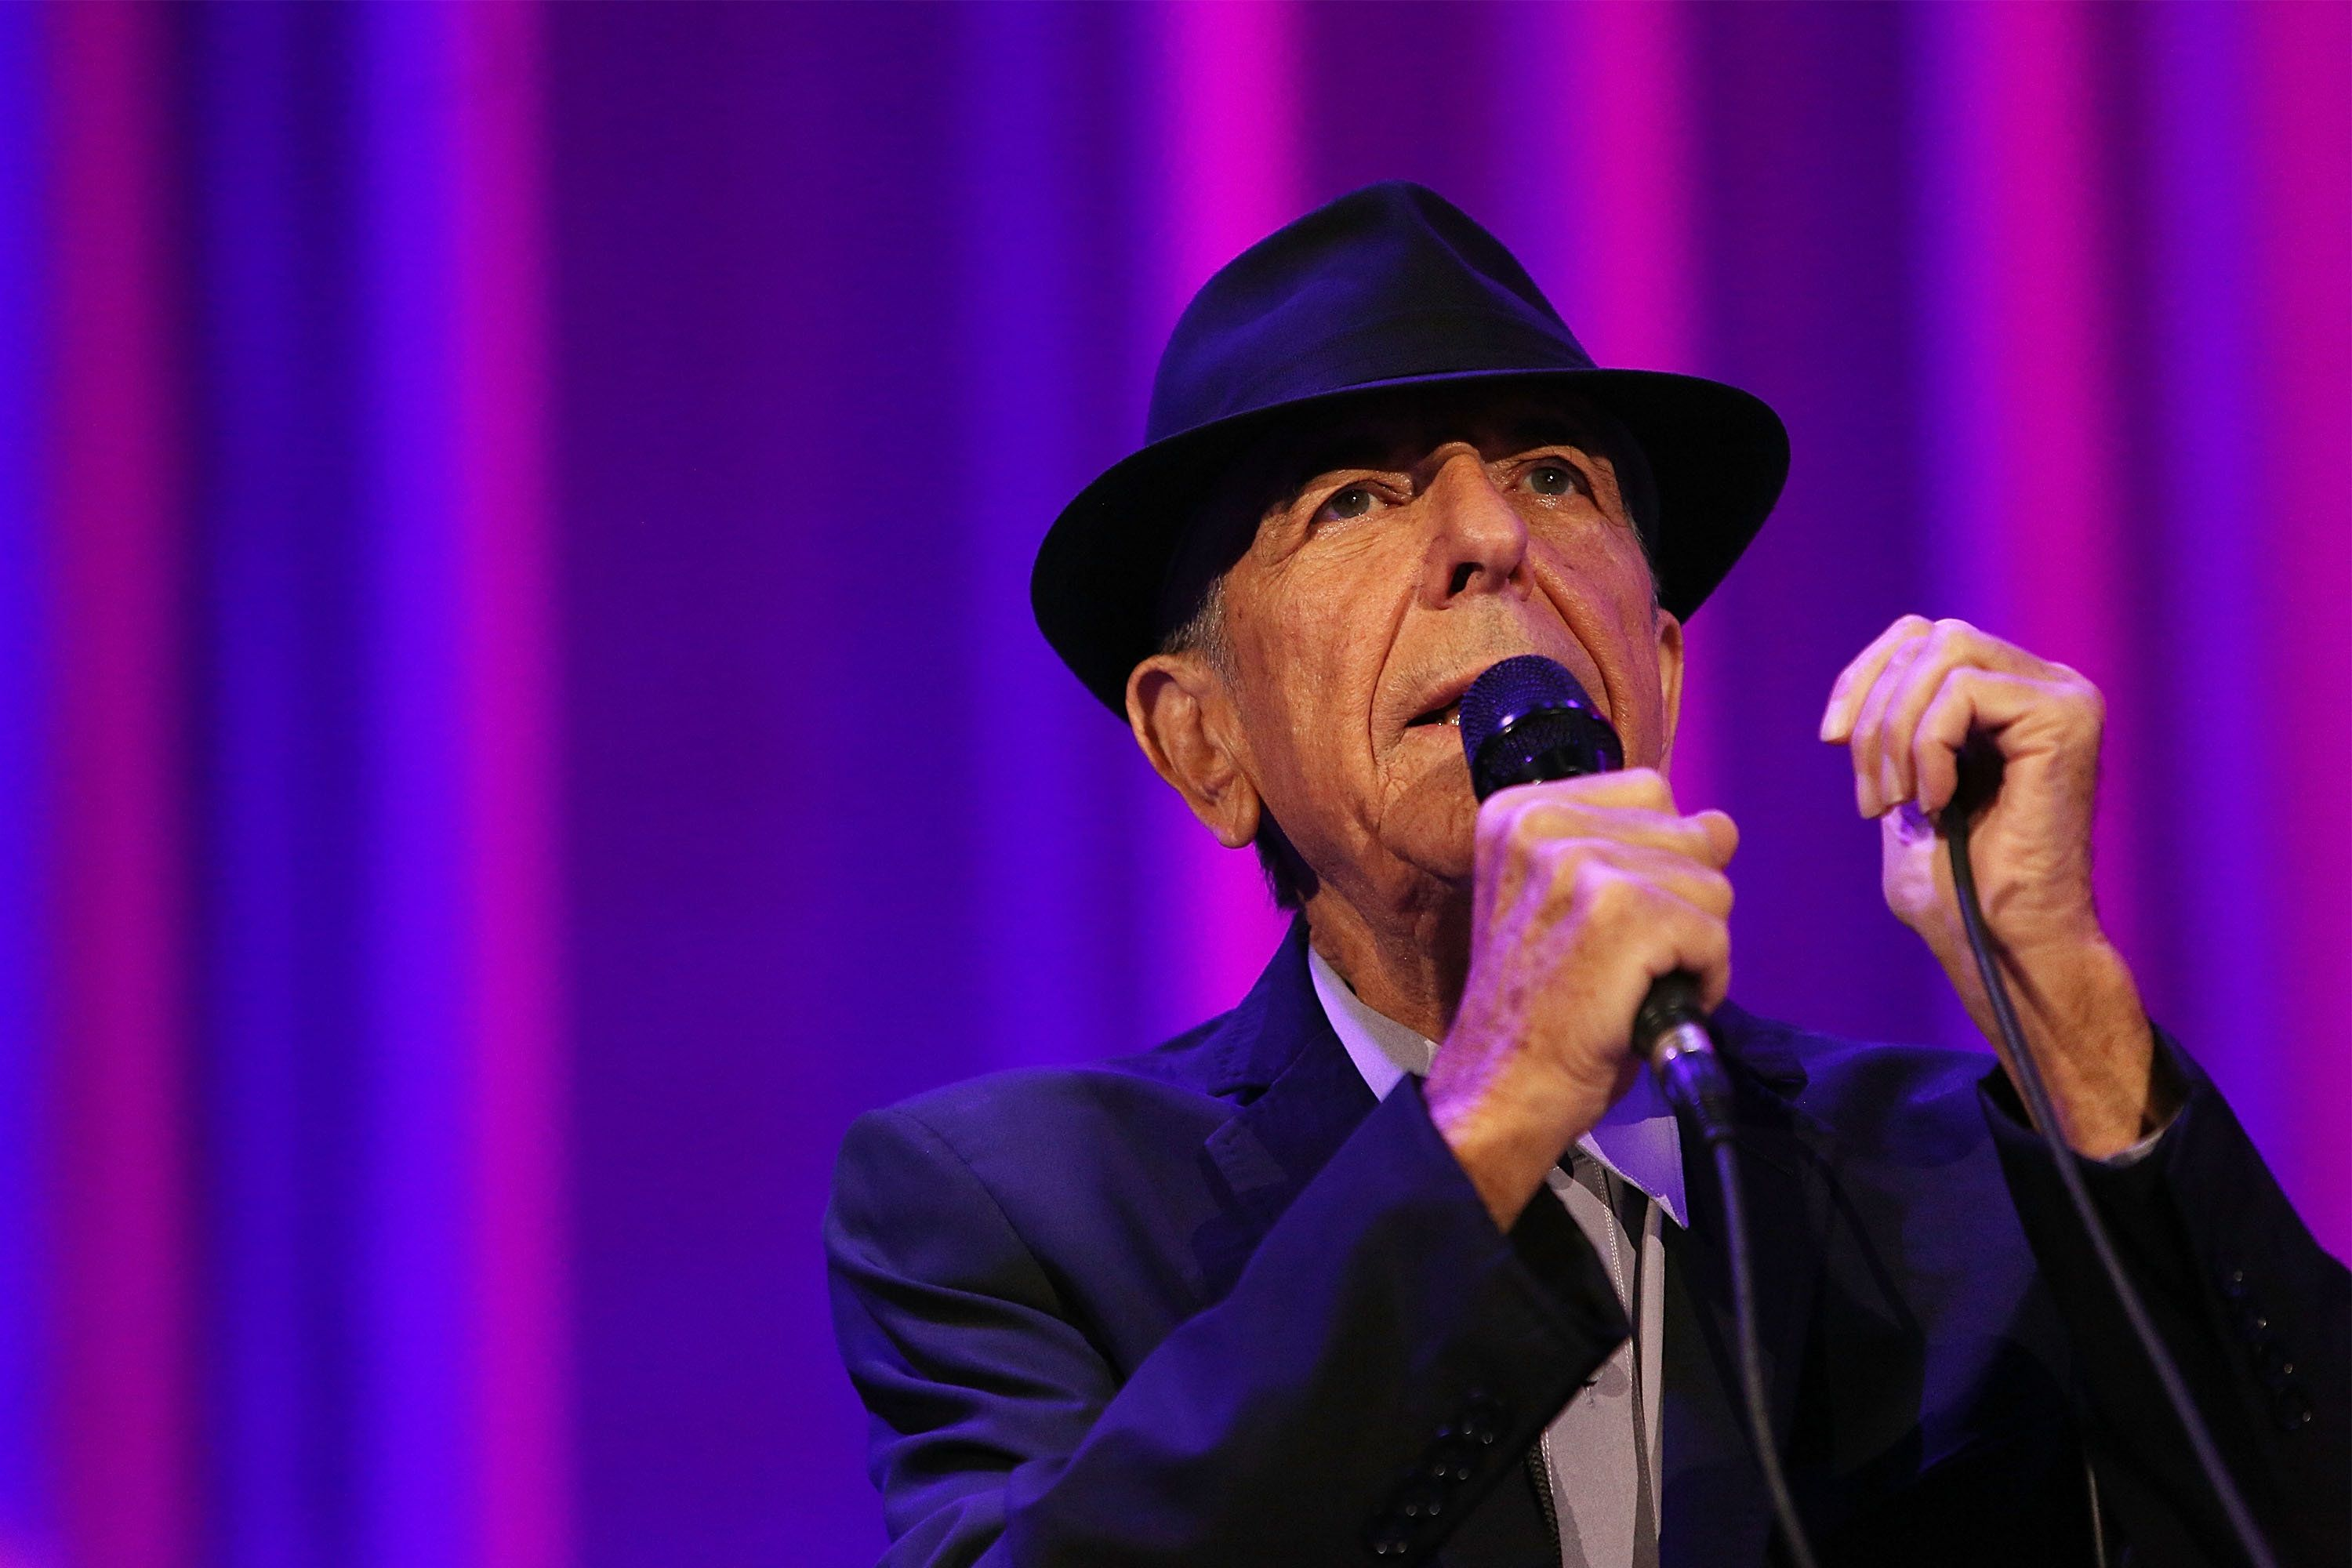 MELBOURNE, AUSTRALIA - NOVEMBER 20:  Leonard Cohen performs live for fans at Rod Laver Arena on November 20, 2013 in Melbourne, Australia.  (Photo by Graham Denholm/WireImage)